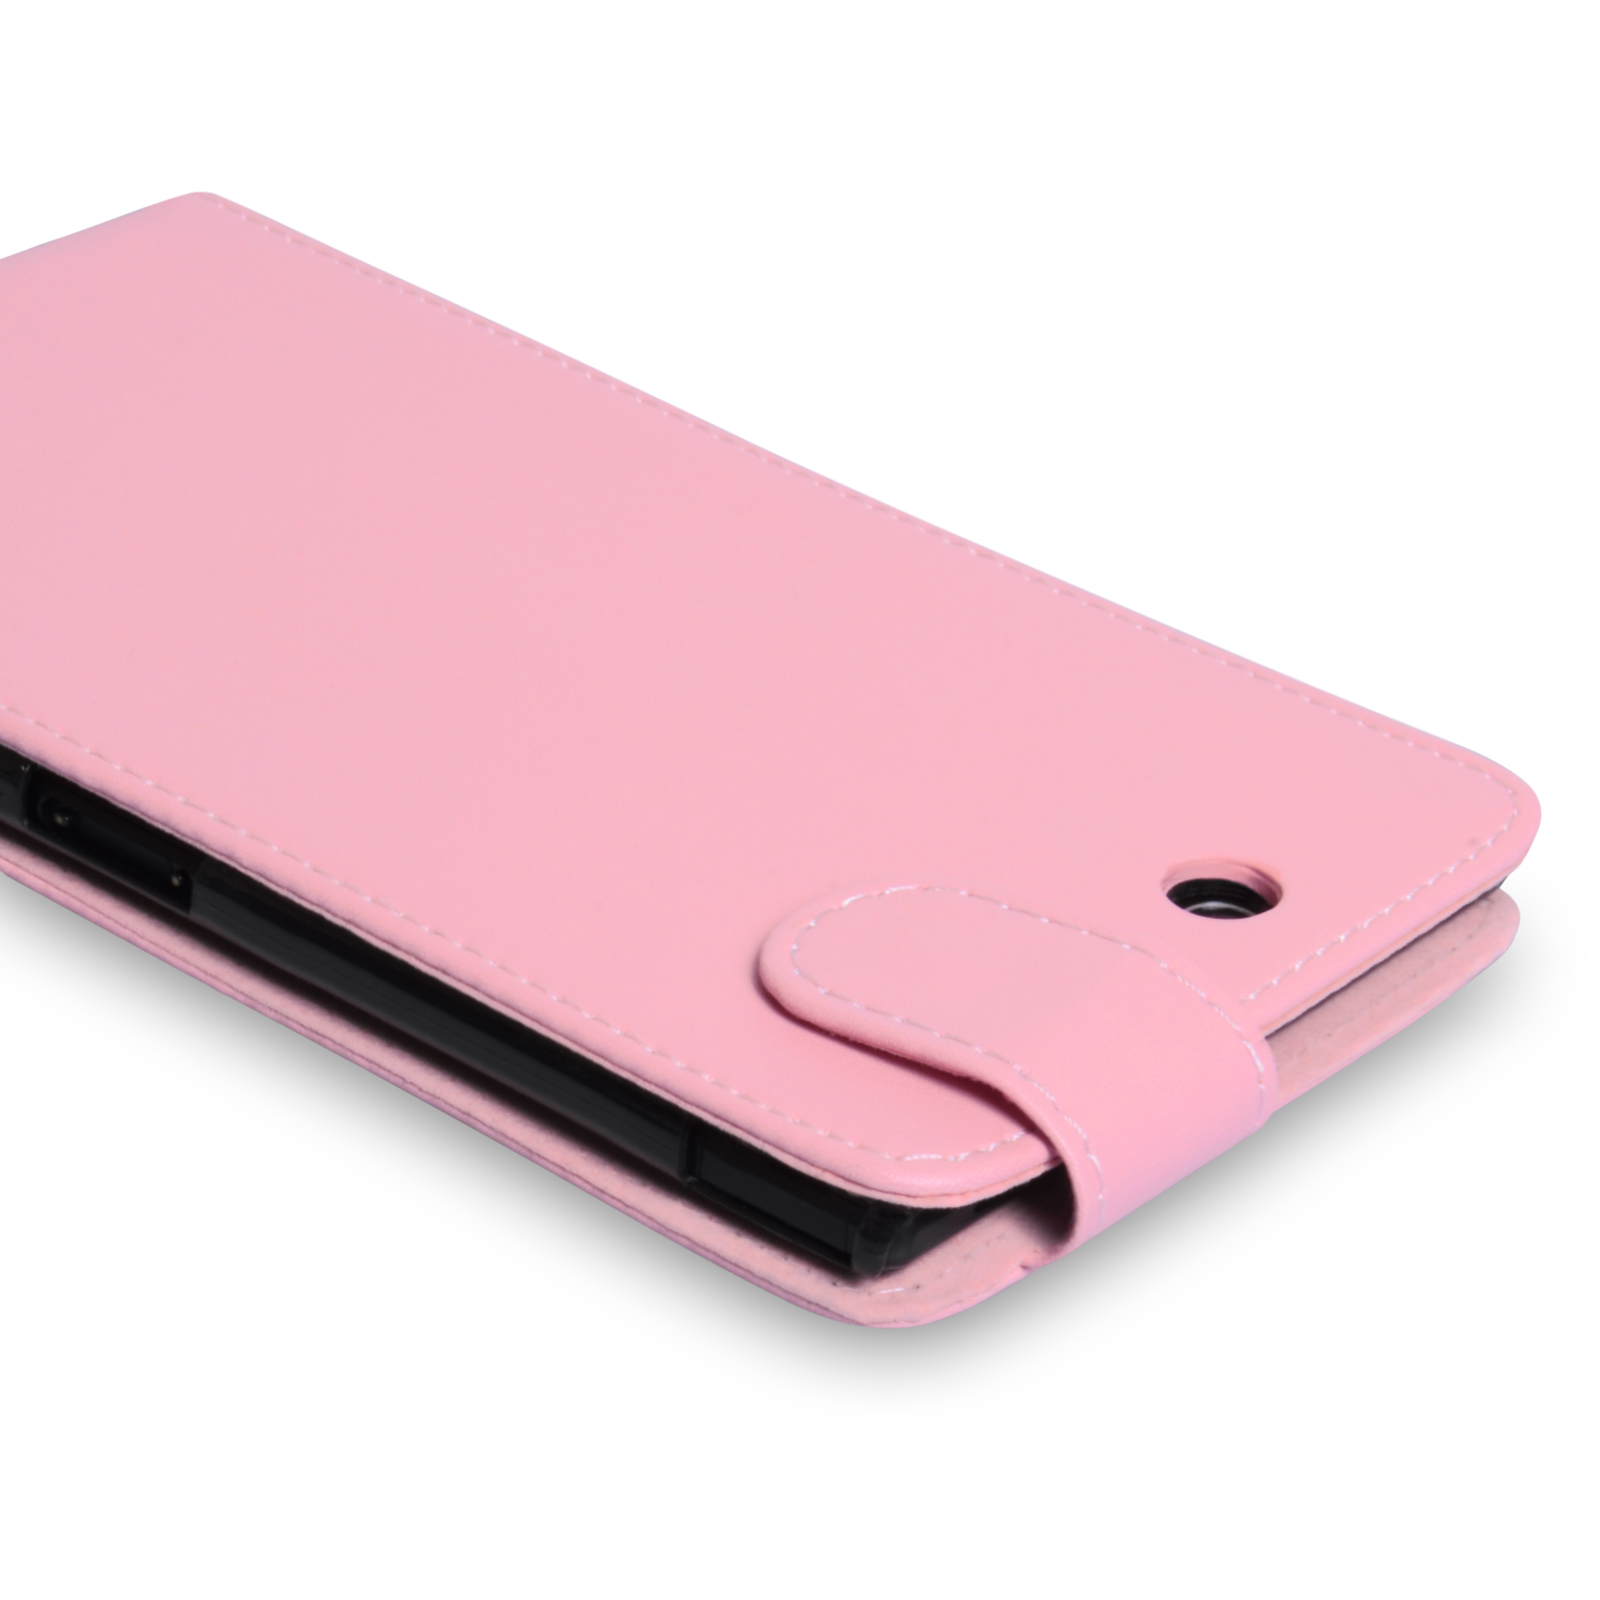 YouSave Sony Xperia Z Ultra Leather Effect Flip Case - Baby Pink